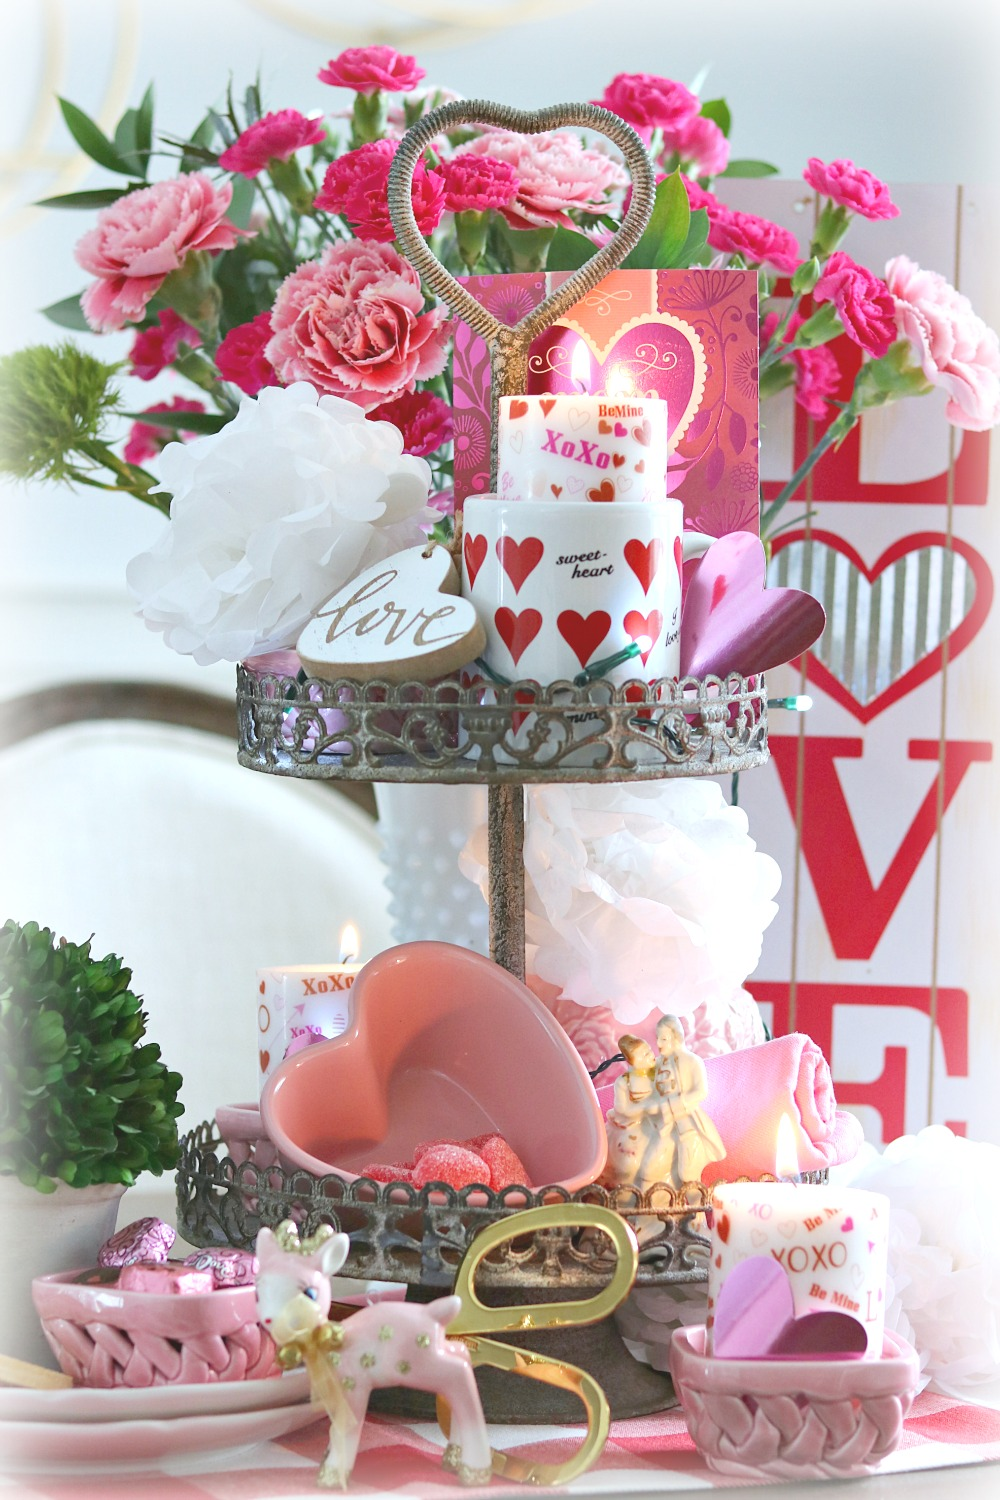 tiered, tray, valentine, valentines, decor, decorating, pink, hearts, red, white, homemaking